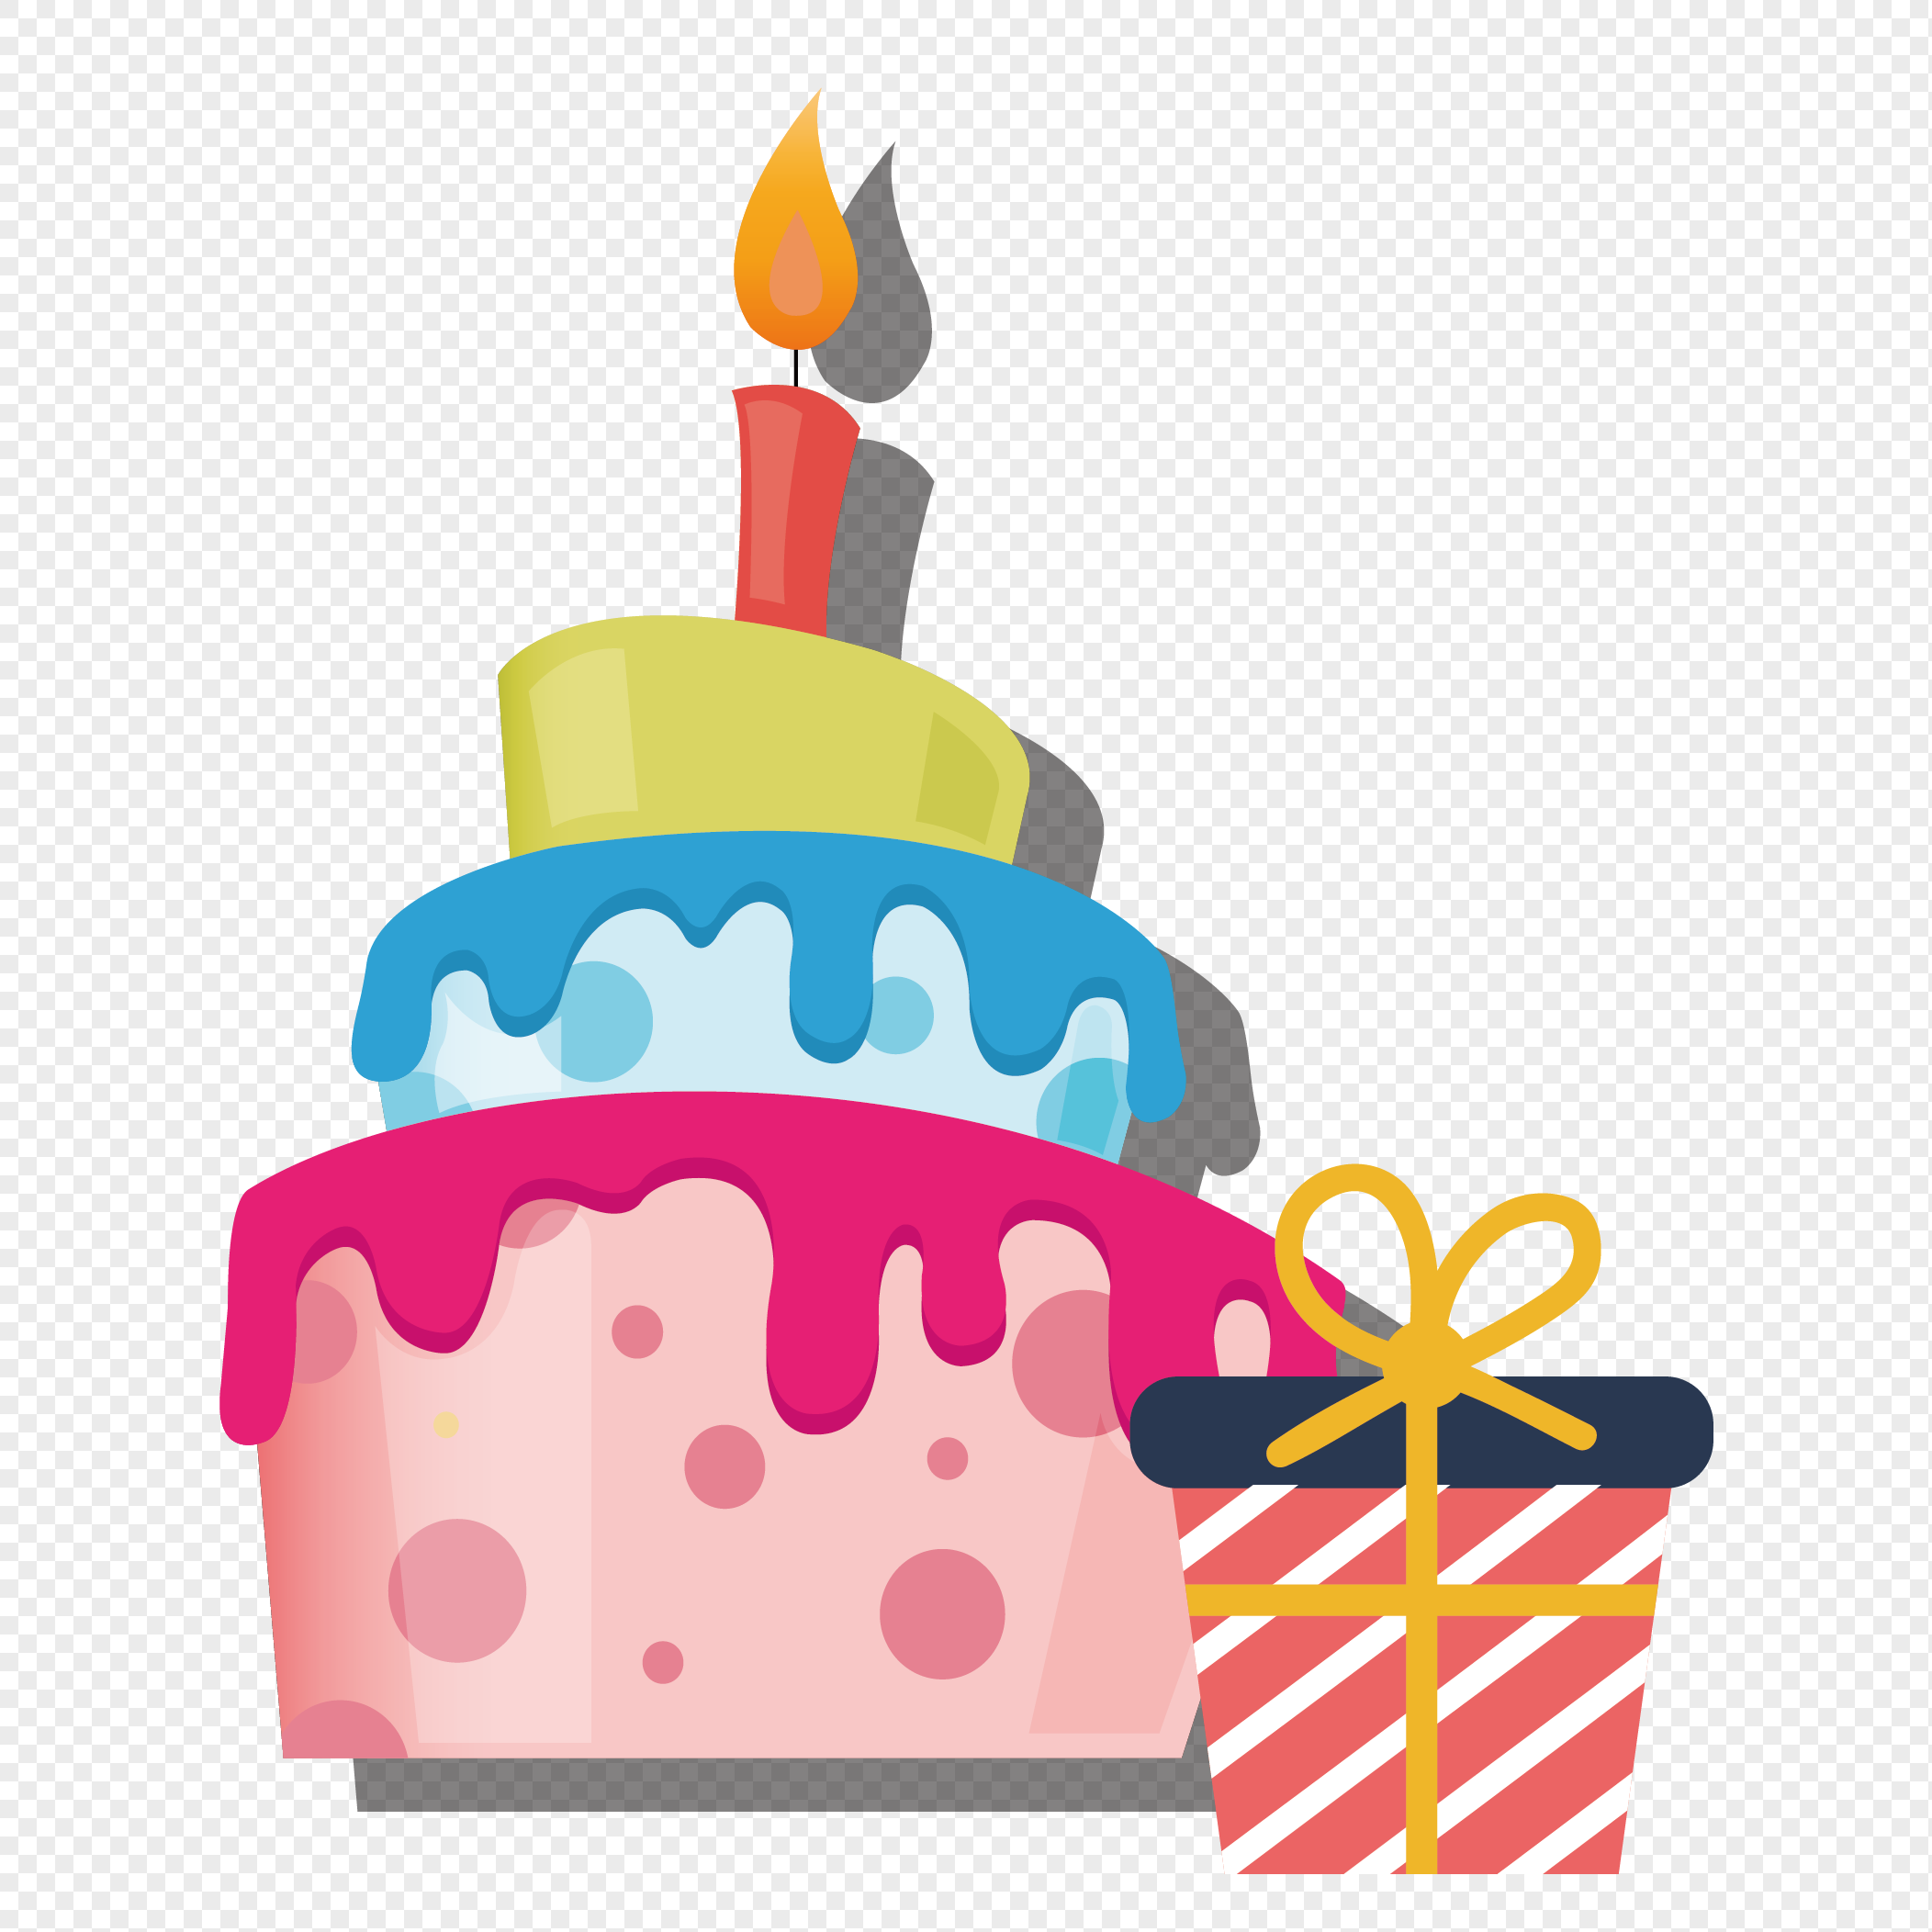 birthday cake gift box candle elements png image picture free